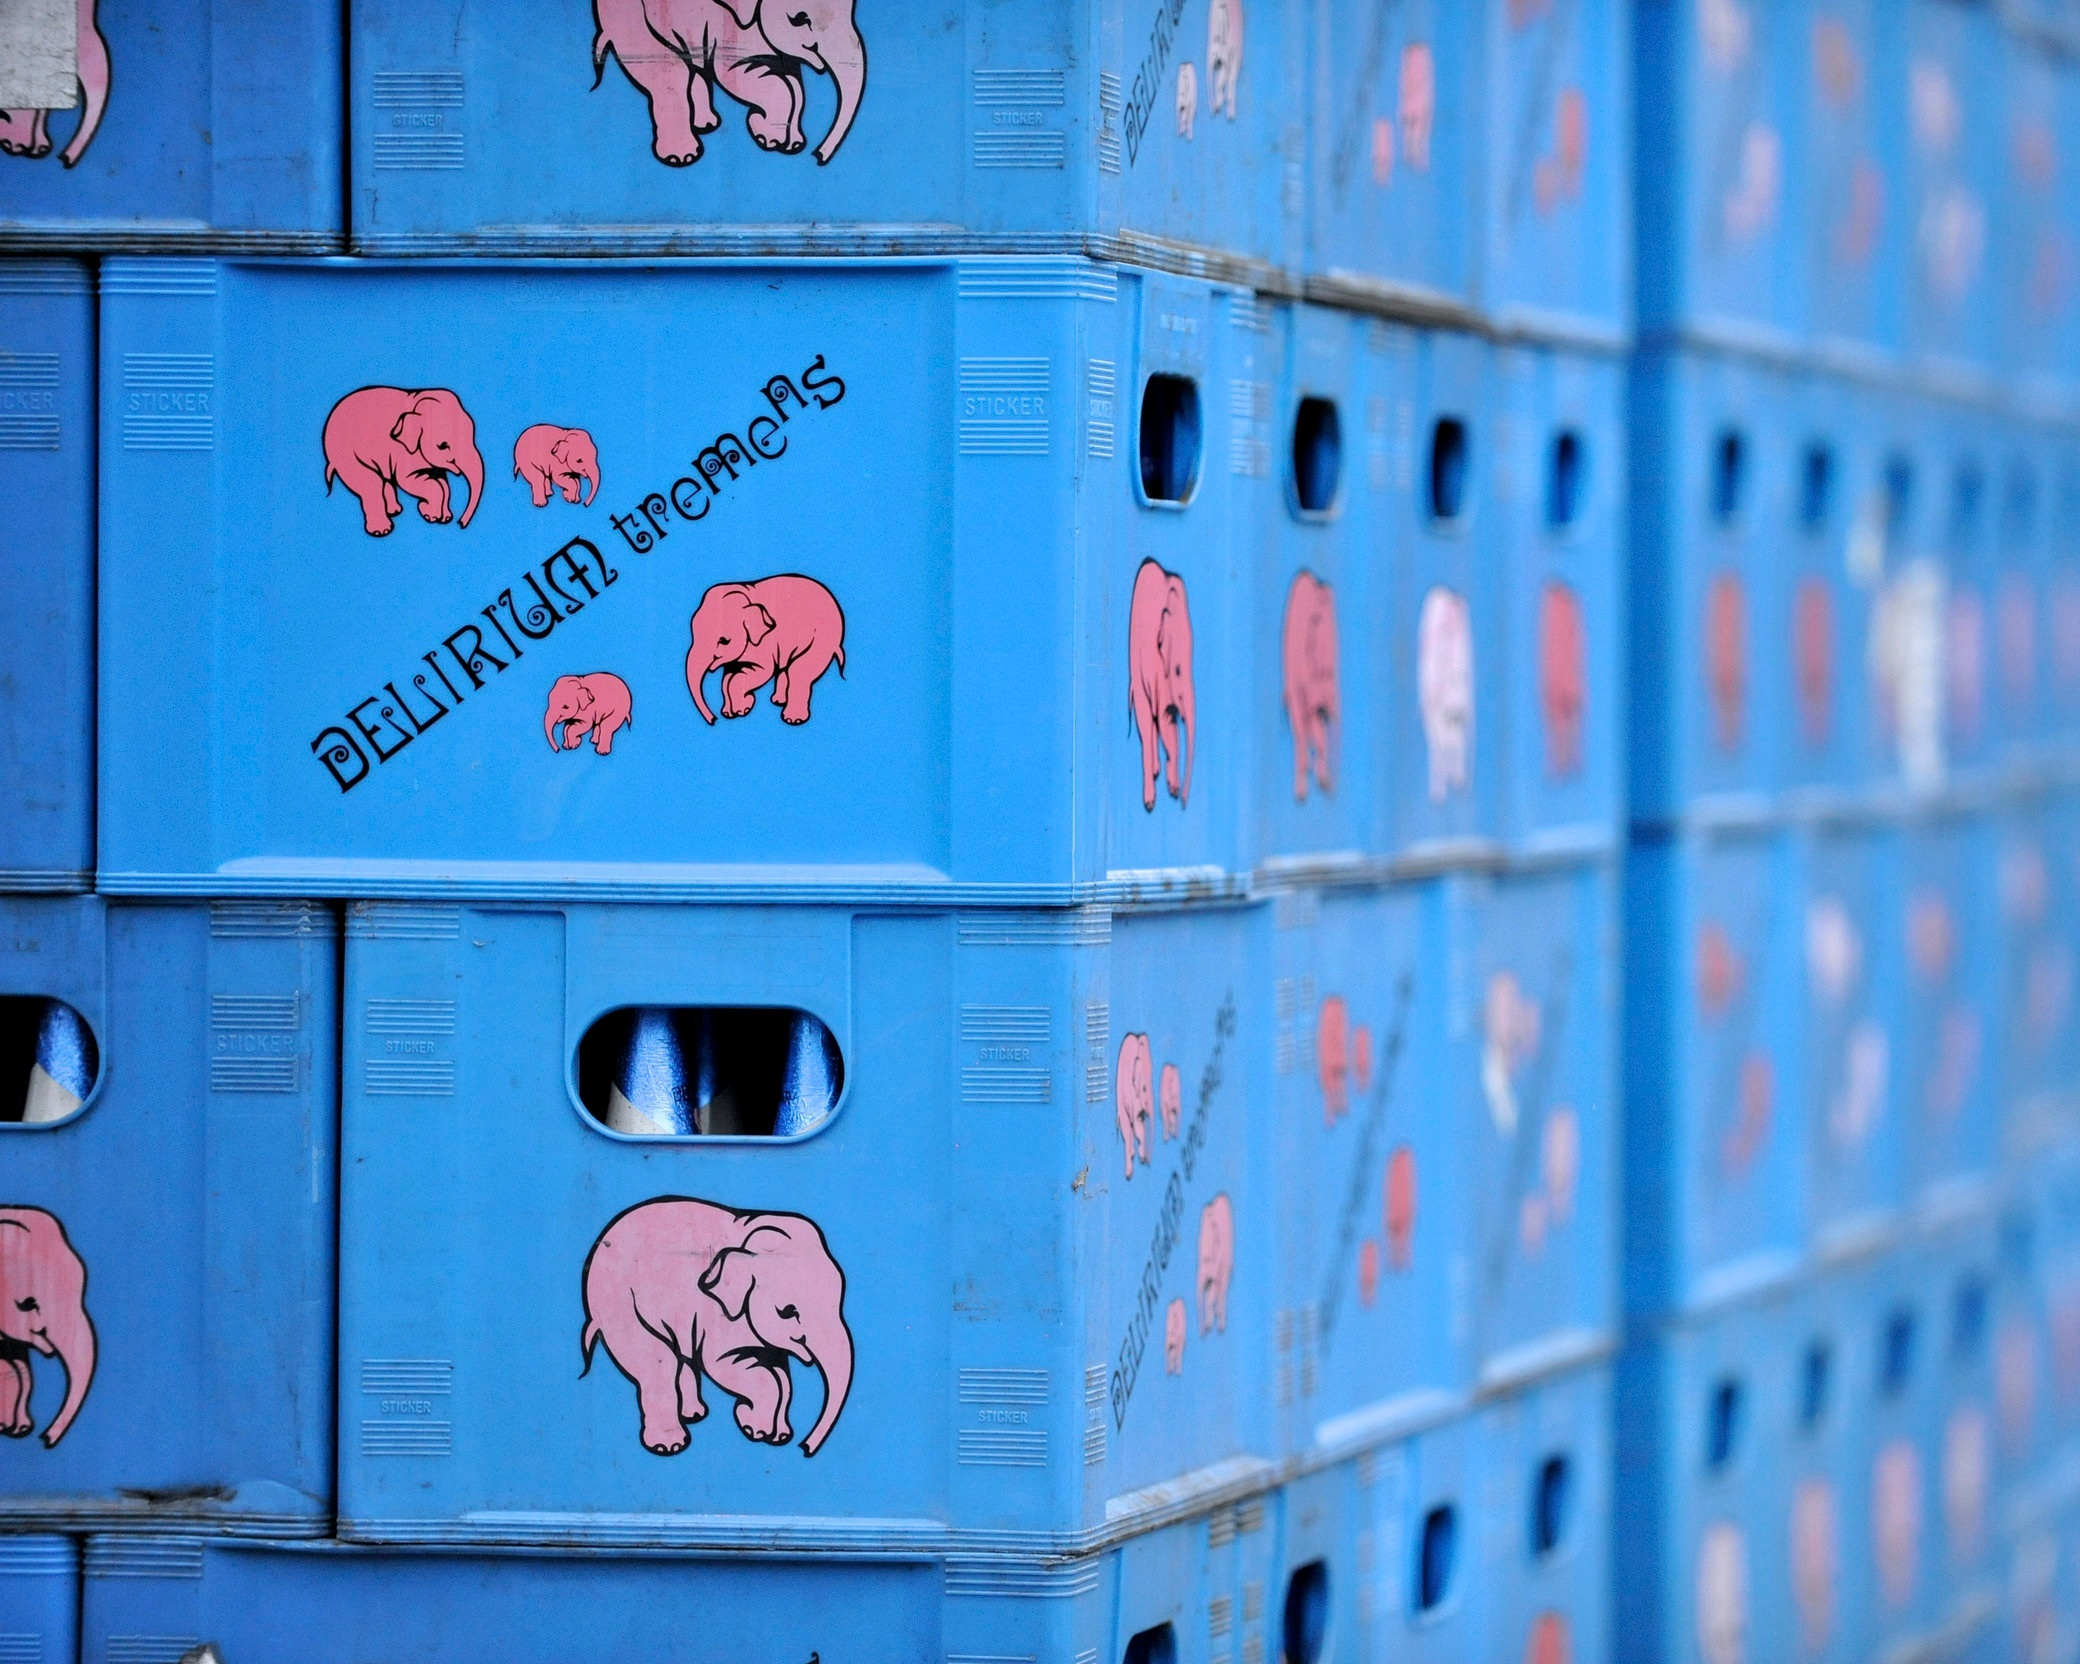 Shipment of Delirium tremens in iconic blue beer crates